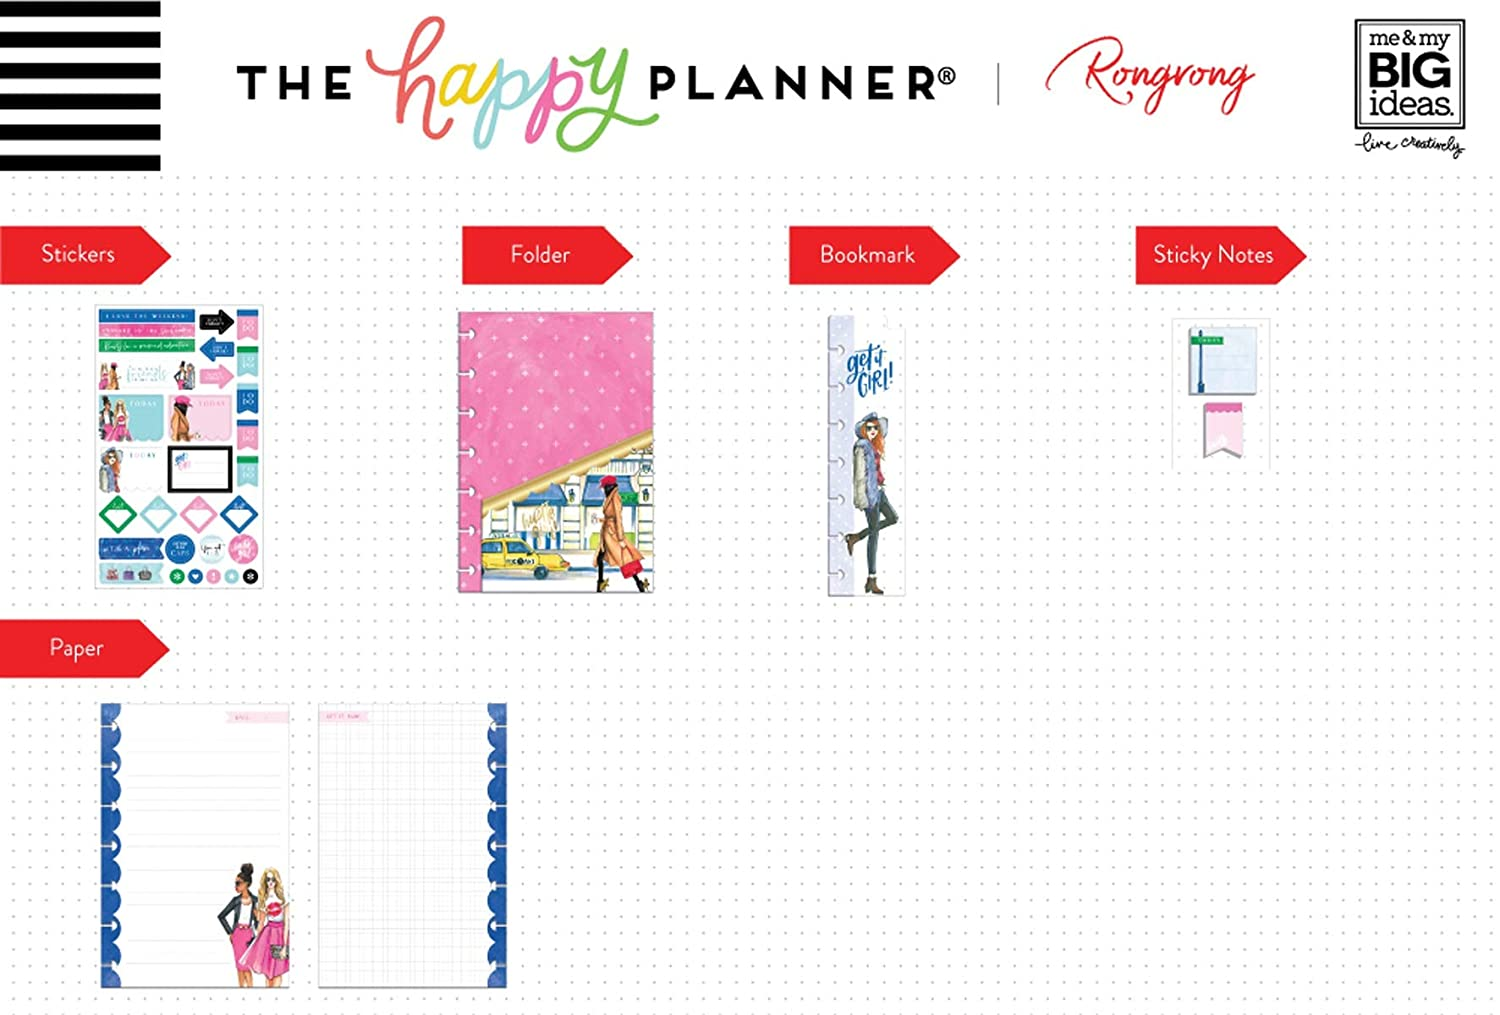 ME /& MY BIG IDEAS PSAPM-07X Happy Planner Access RONGRONG